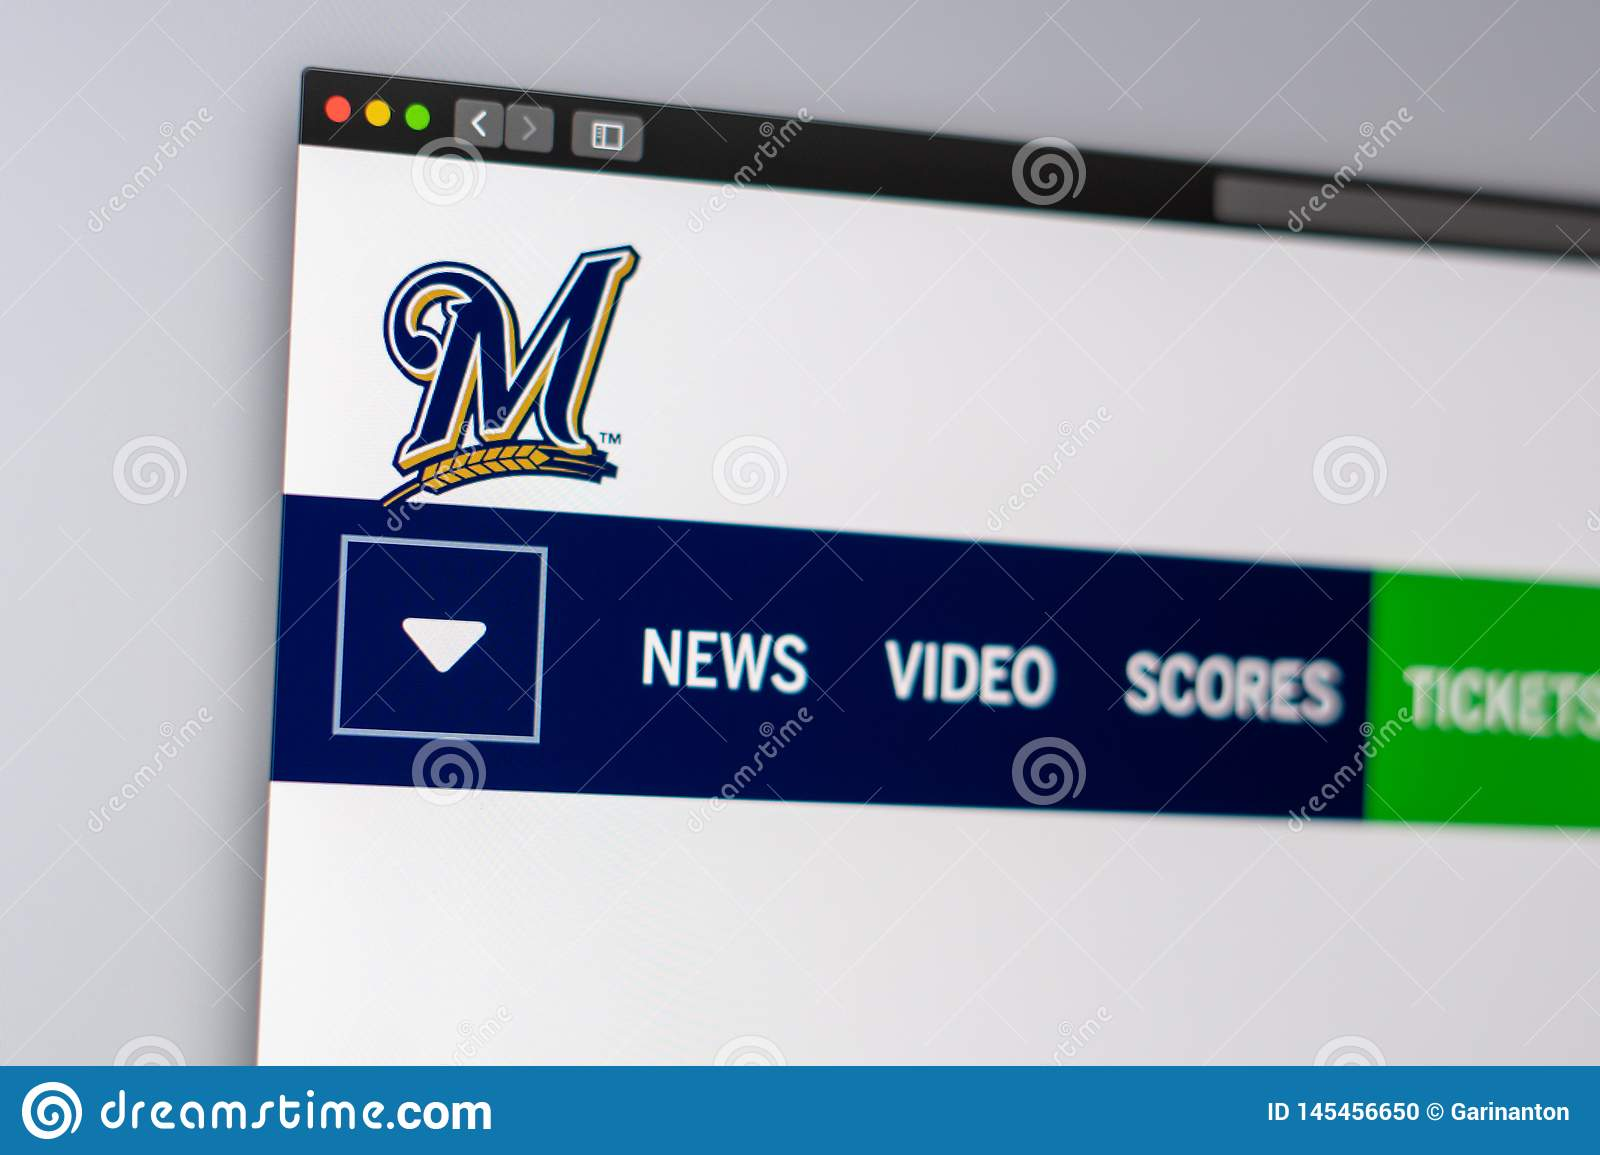 baseball team milwaukee brewers